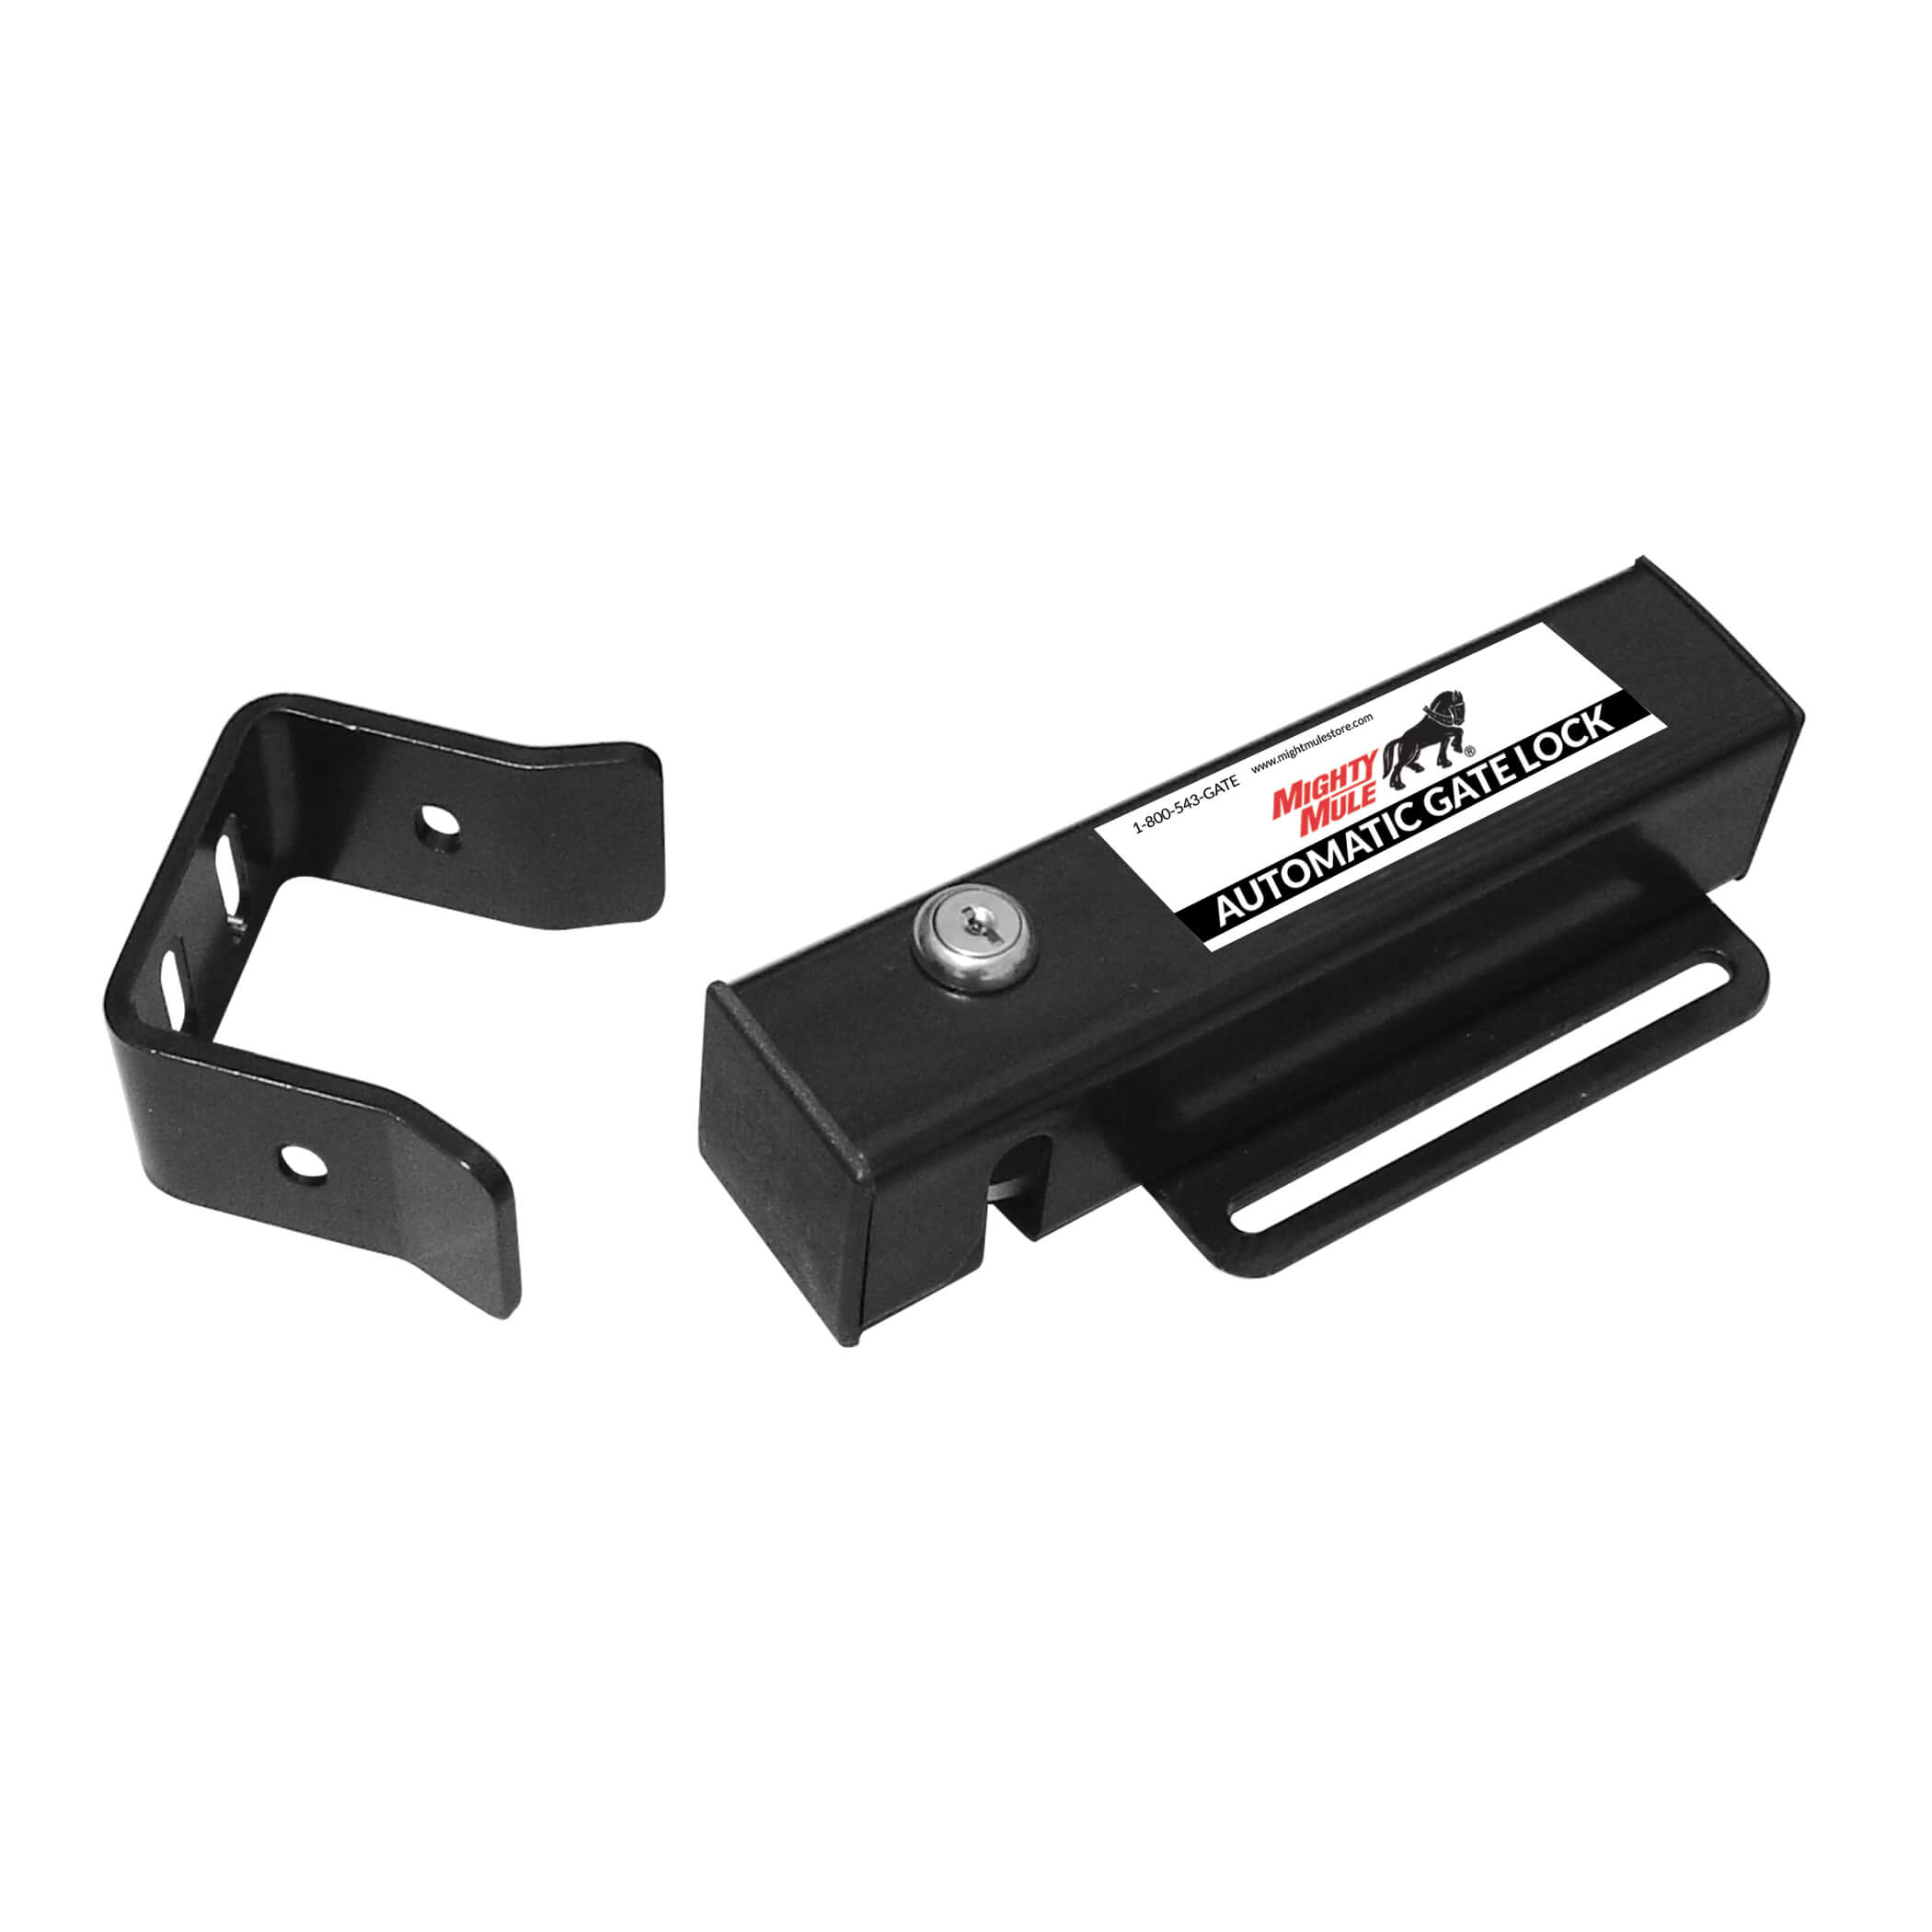 Automatic Gate Lock - FM143